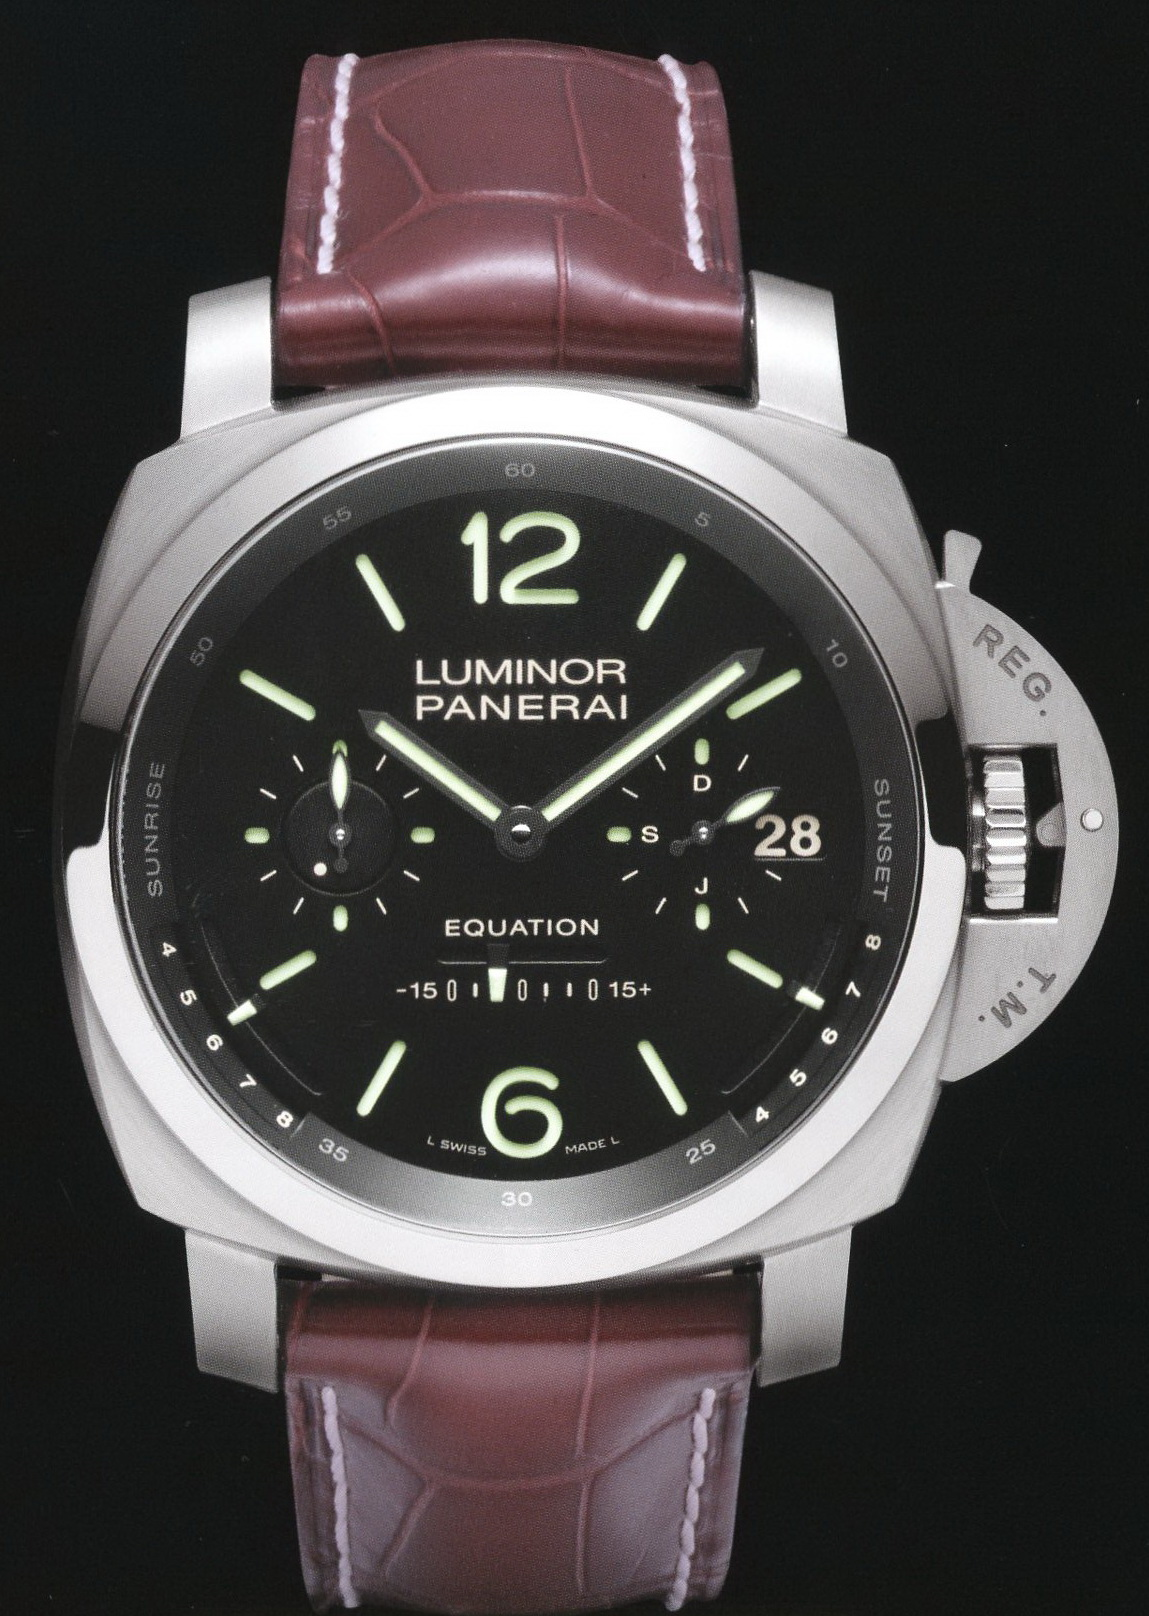 часы Panerai 2010 Special Edition Luminor 1950 Equation of Time Tourbilon Titanium L'Astronomo